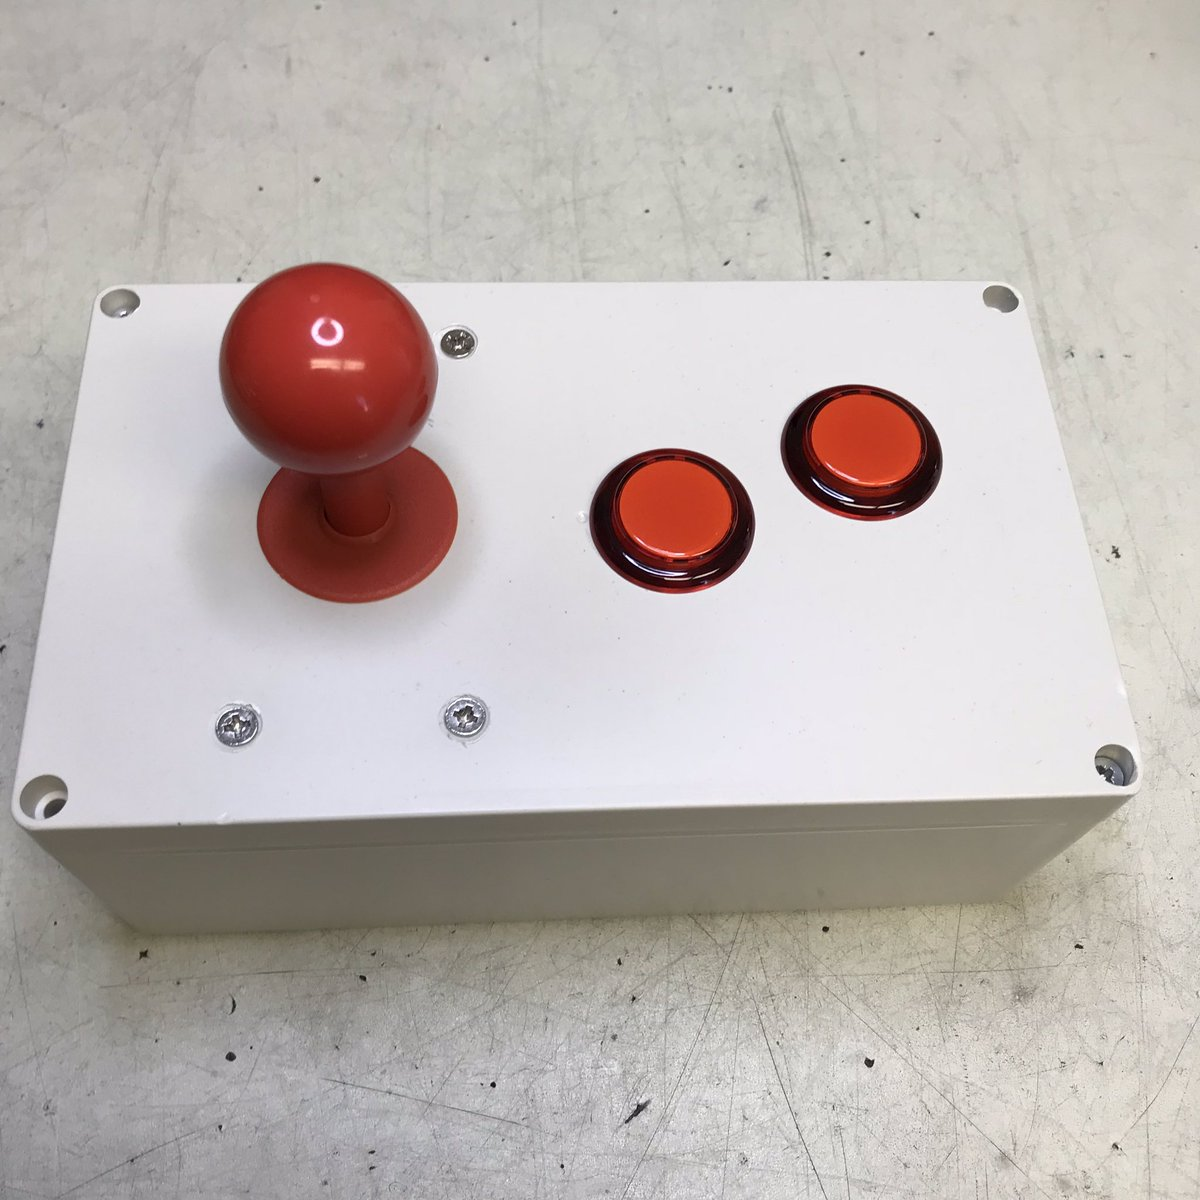 Seimitsu Hashtag On Twitter Sanwa Joystick Wiring Diagram Still Need To Wire It Up But Its Coming Along Ok Im Using All Arcade Parts For My Retro Gaming Project Order Yours From Benj